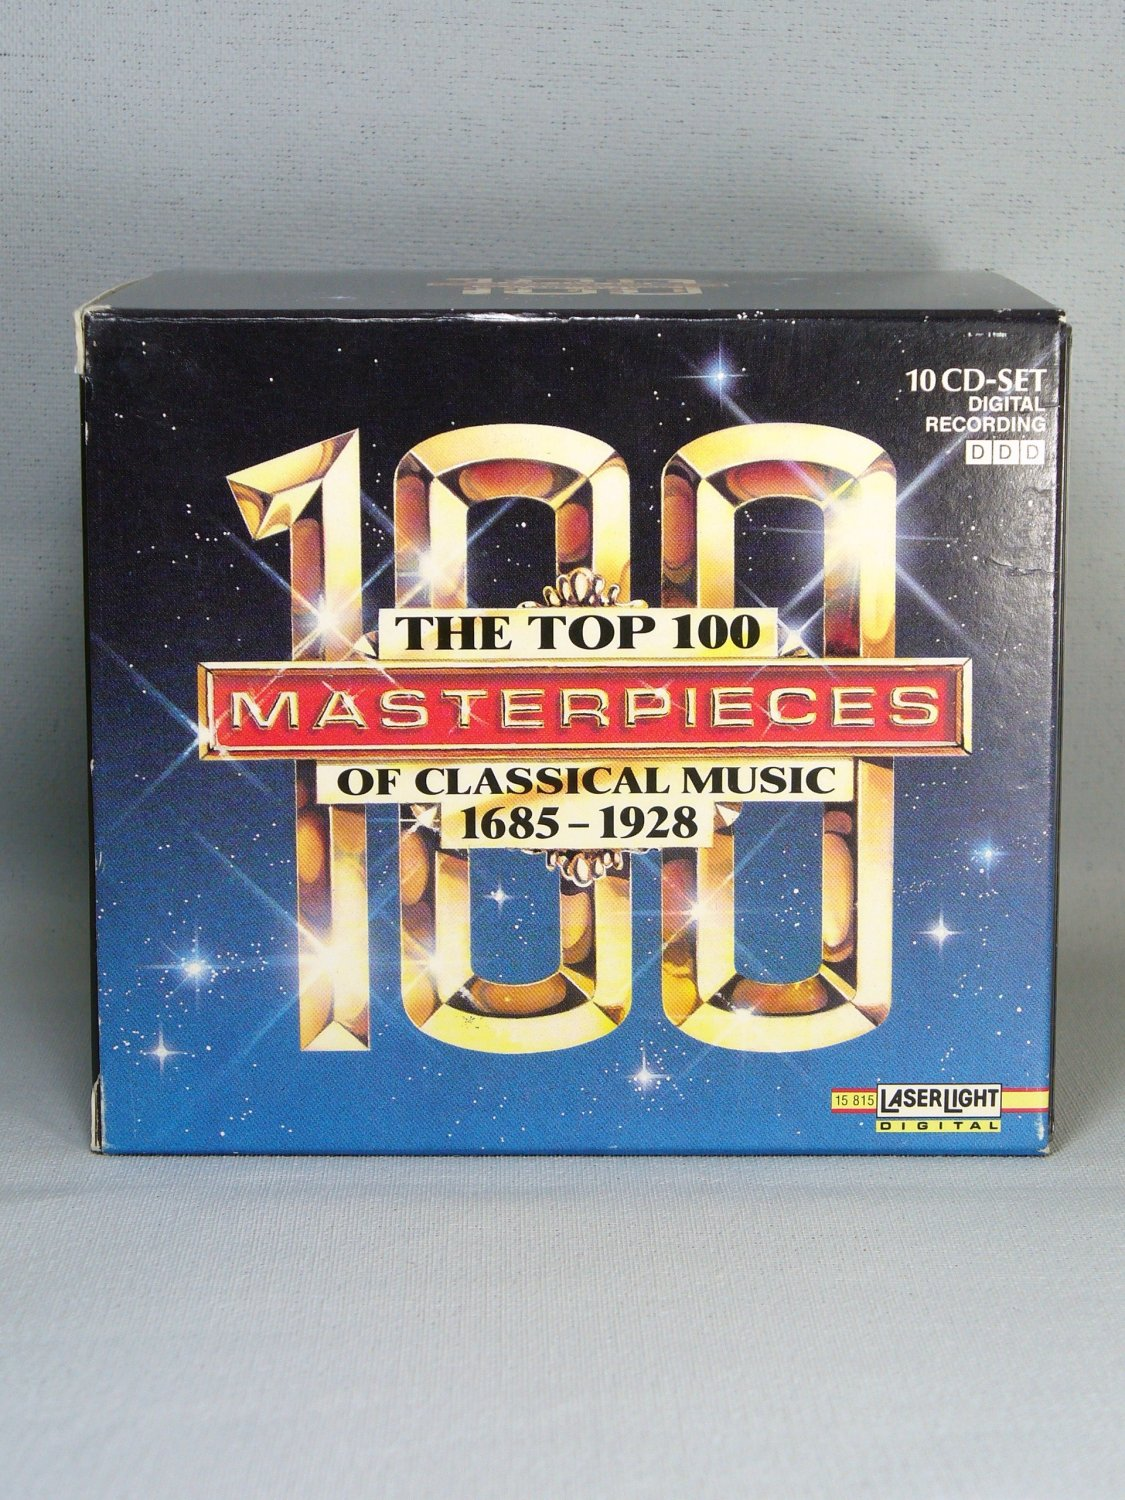 Top 100 Masterpieces Of Classical Music 1685-1928 (10 CD Set